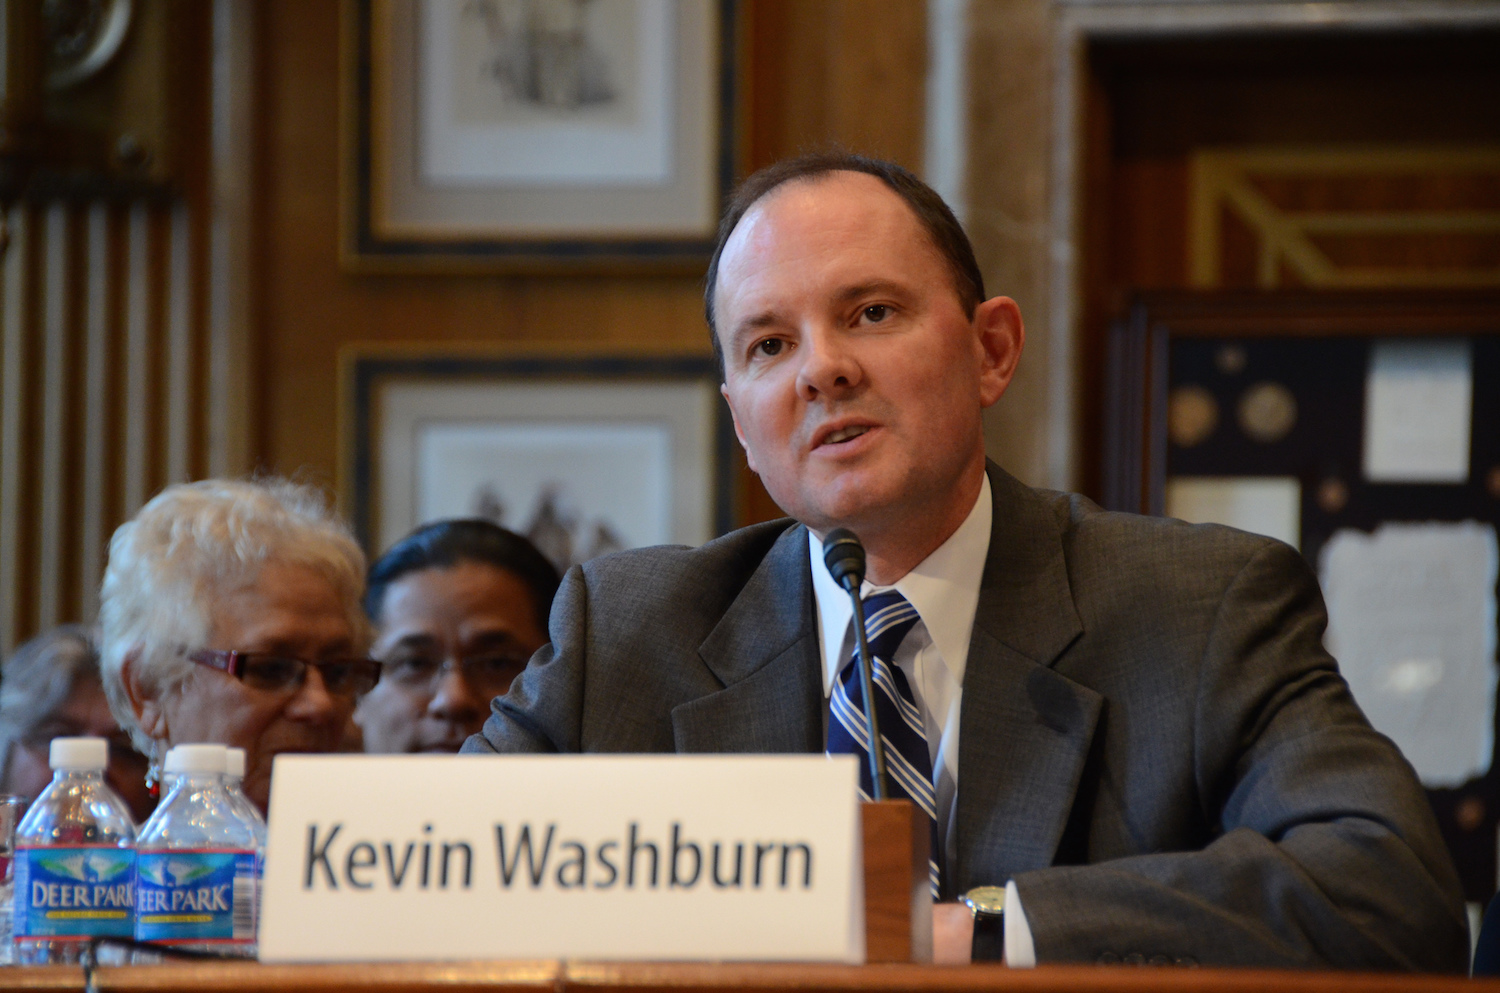 Assistant Secretary Washburn plans to return to New Mexico